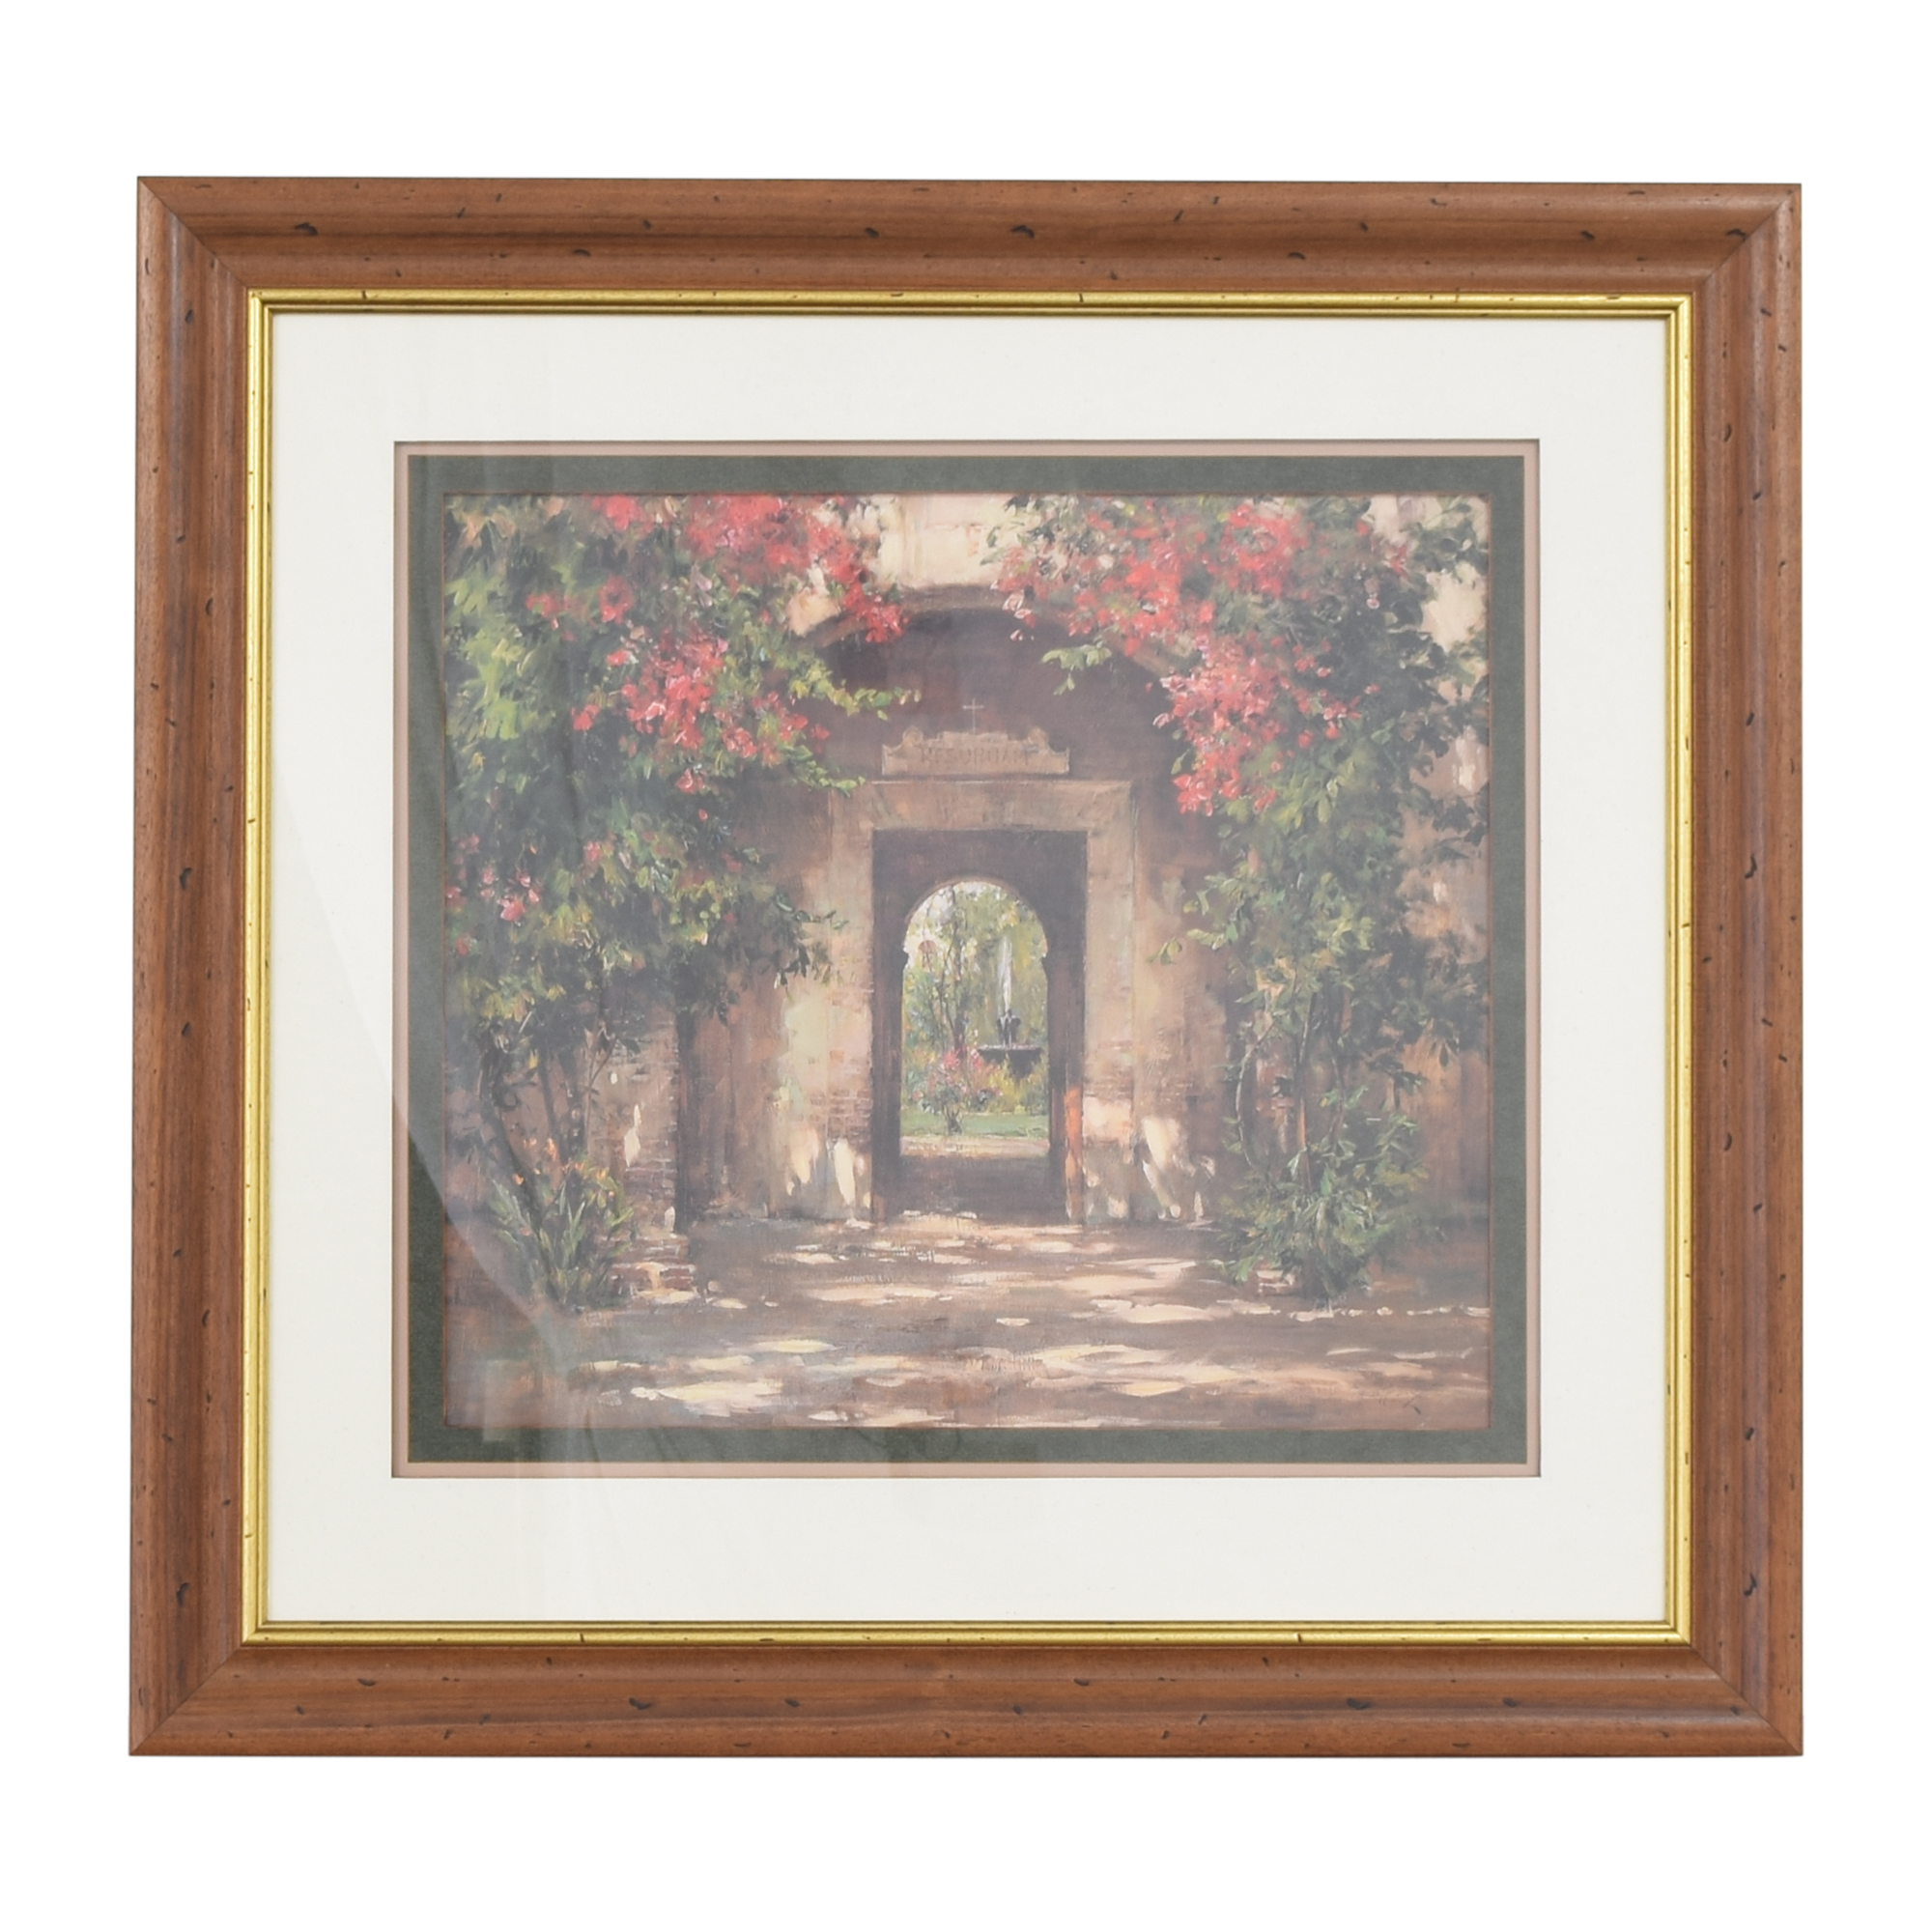 buy Ethan Allen Ethan Allen Flowered Doorway Wall Art online